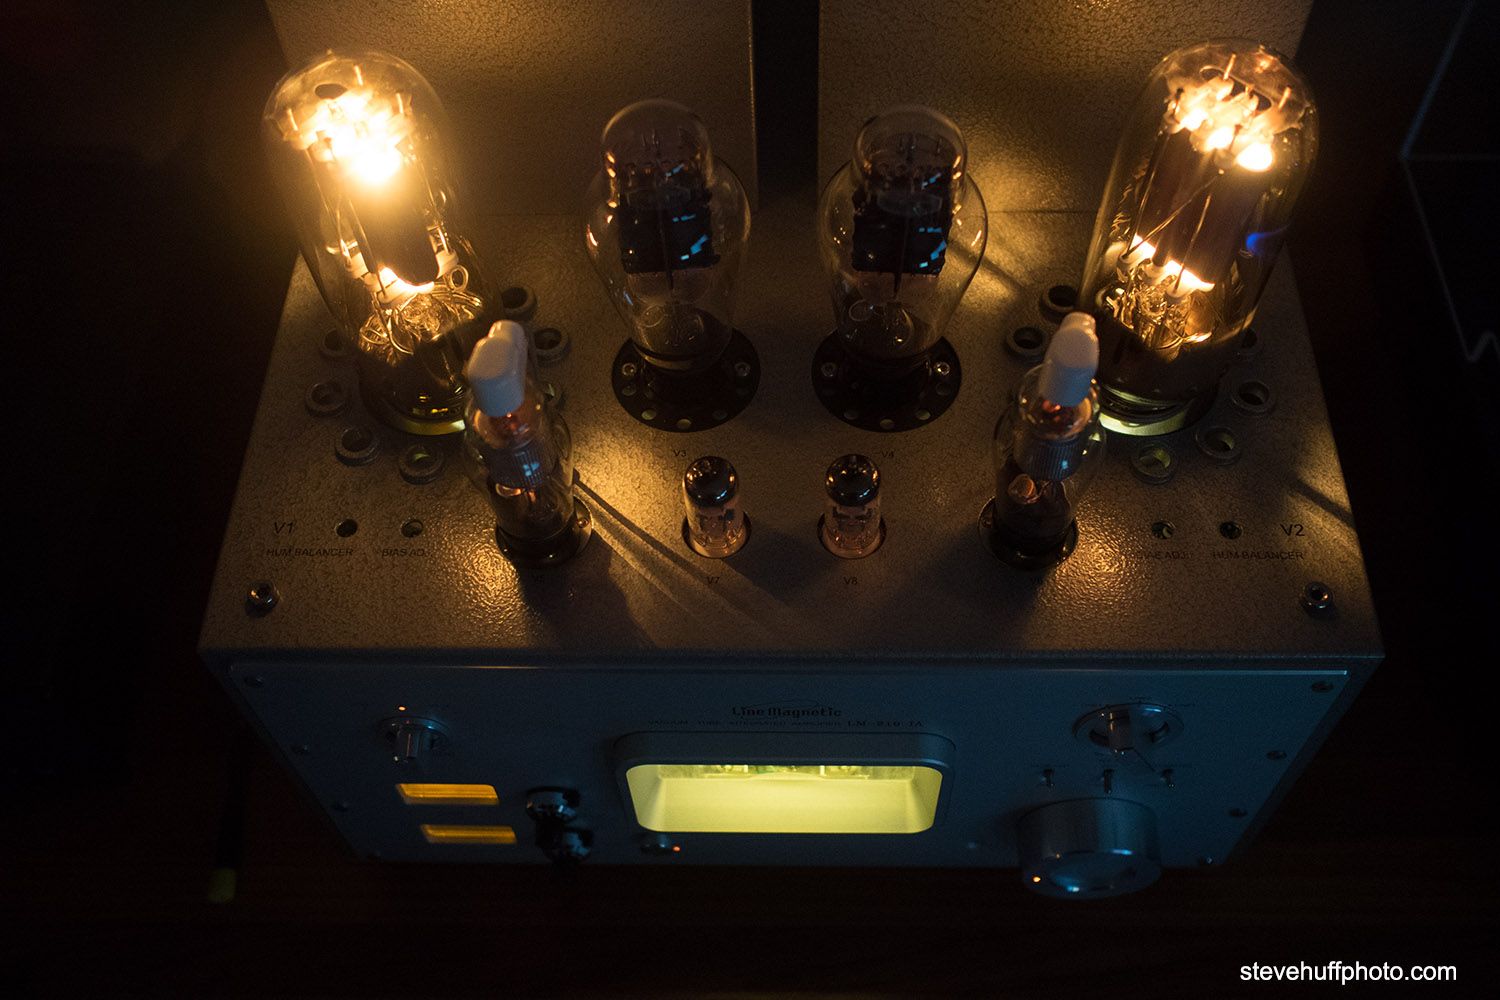 Line Magnetic 219ia Integrated Tube Amp Review 300b And 845 Audio Note Conquest Power With Olympus Digital Camera